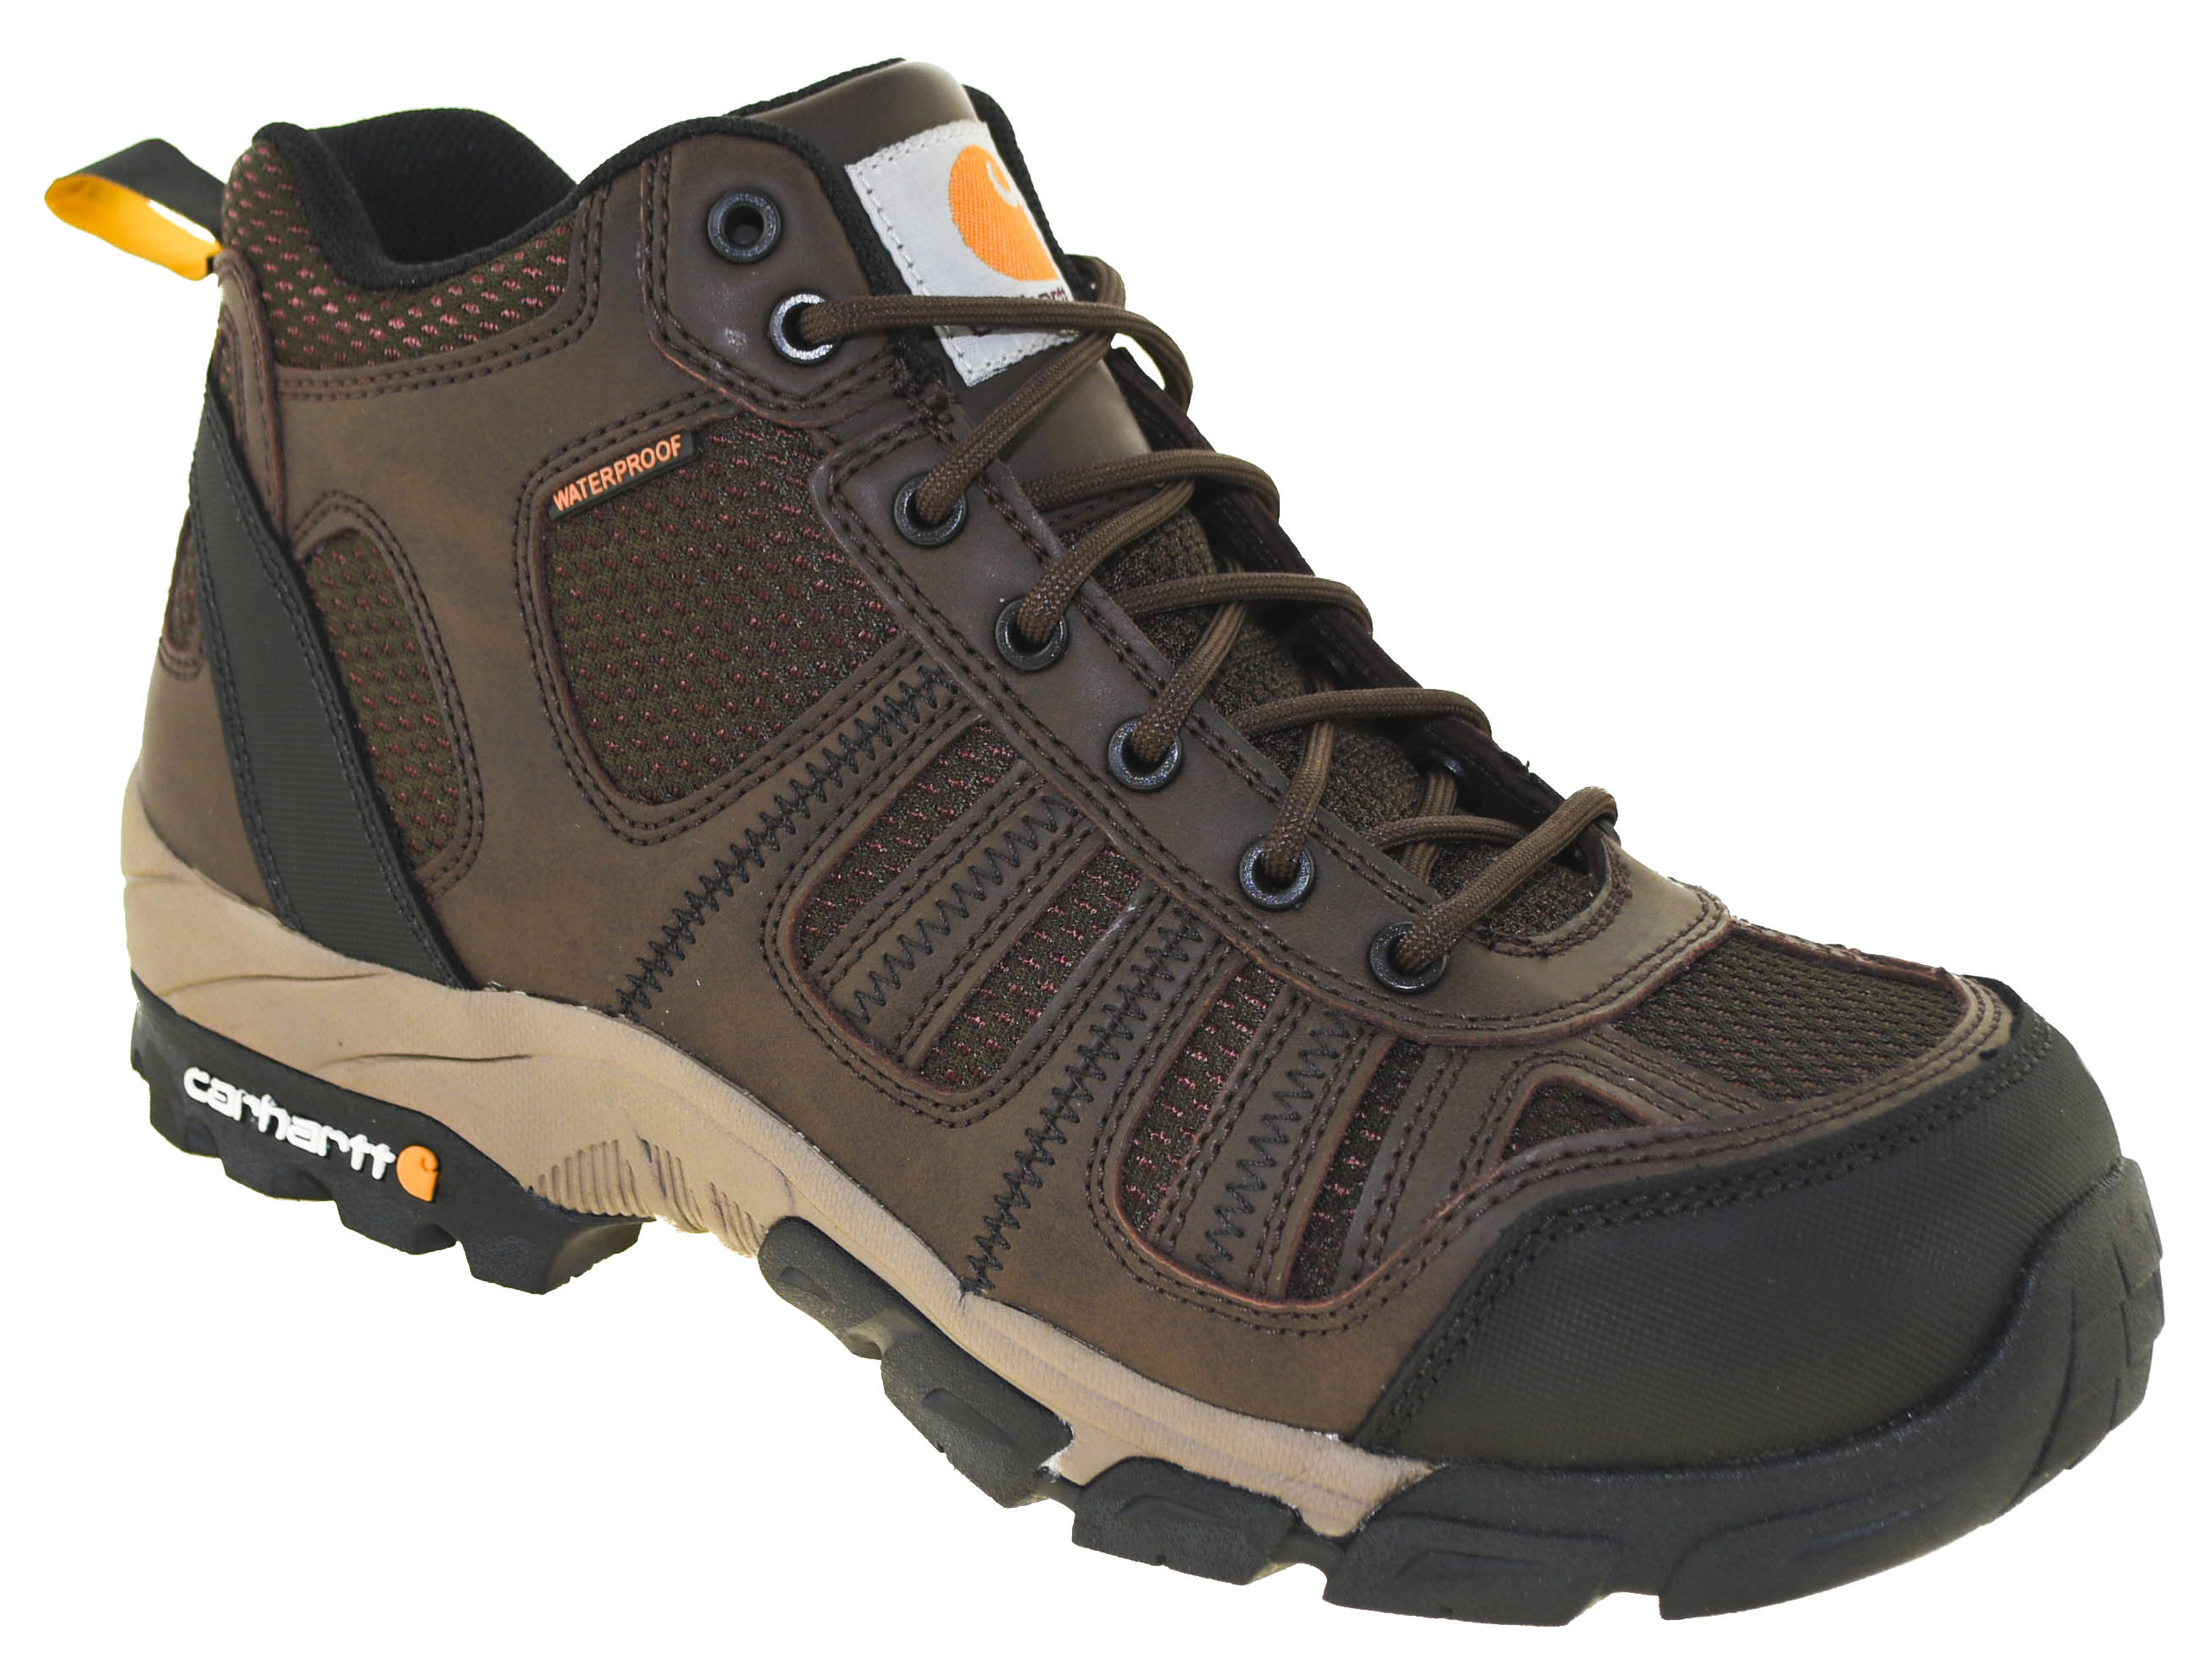 eb2ce189ee3 Details about Carhartt Men's Waterproof Composite Toe Hiker Boot Style  CMH4370